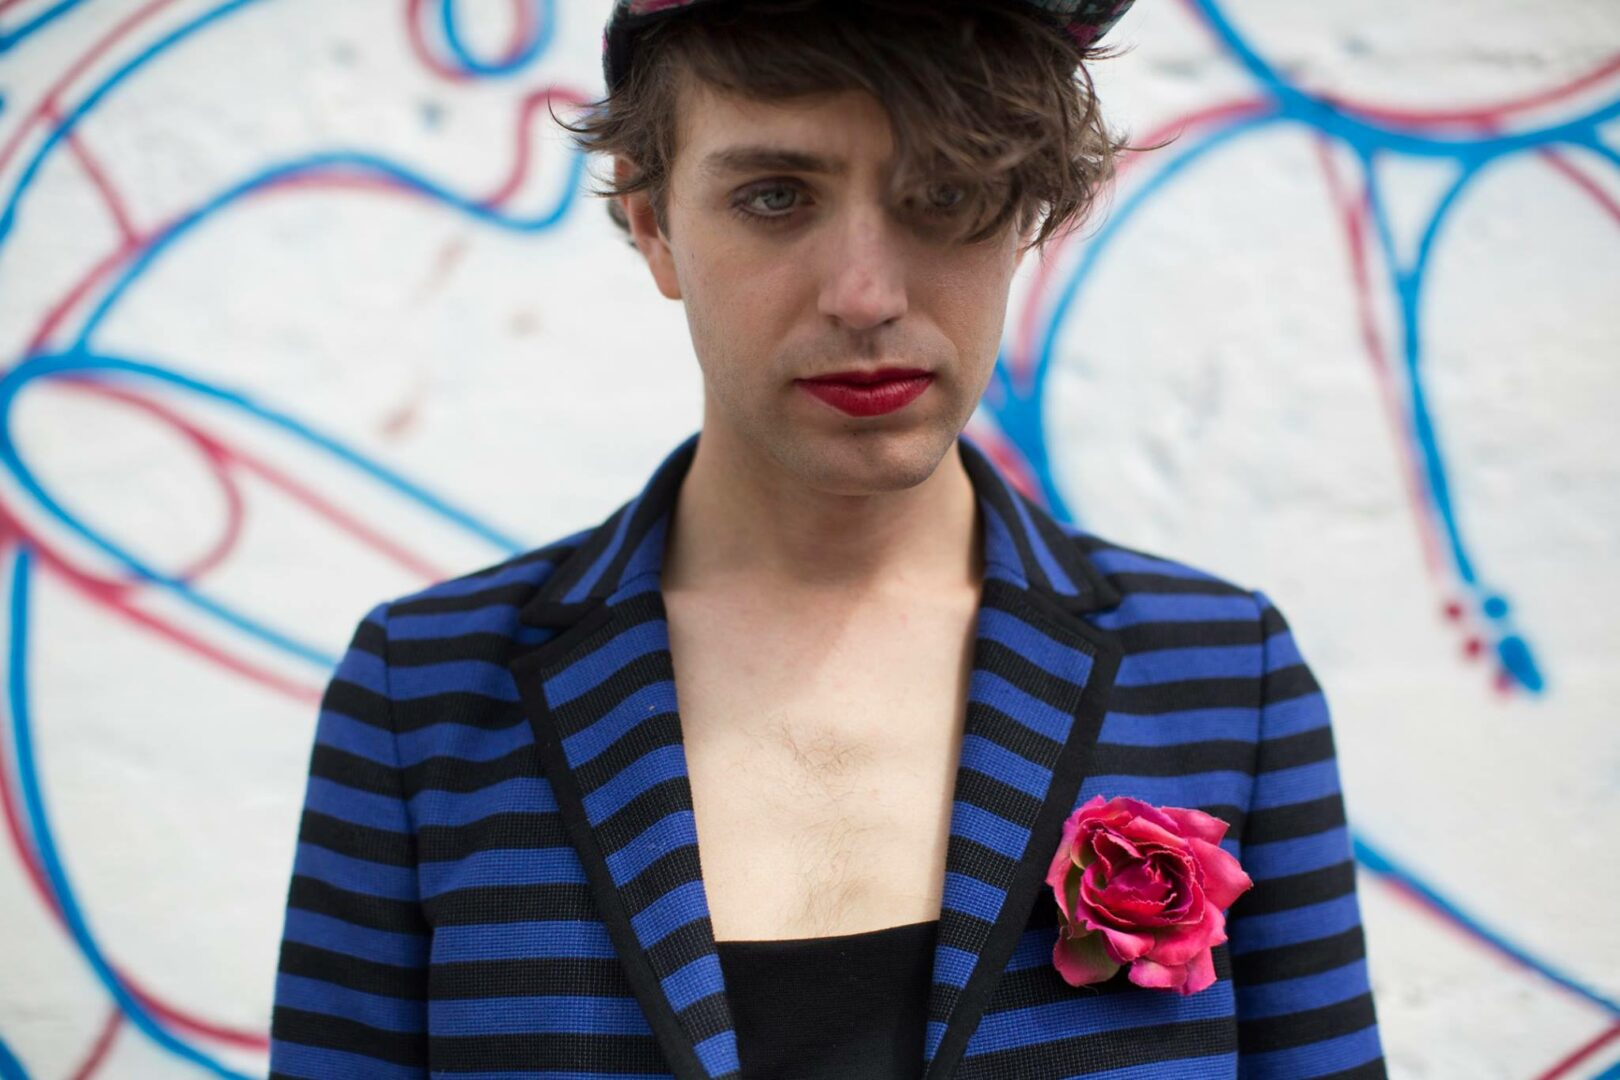 Ezra Furman Announces U.S. Tour Dates